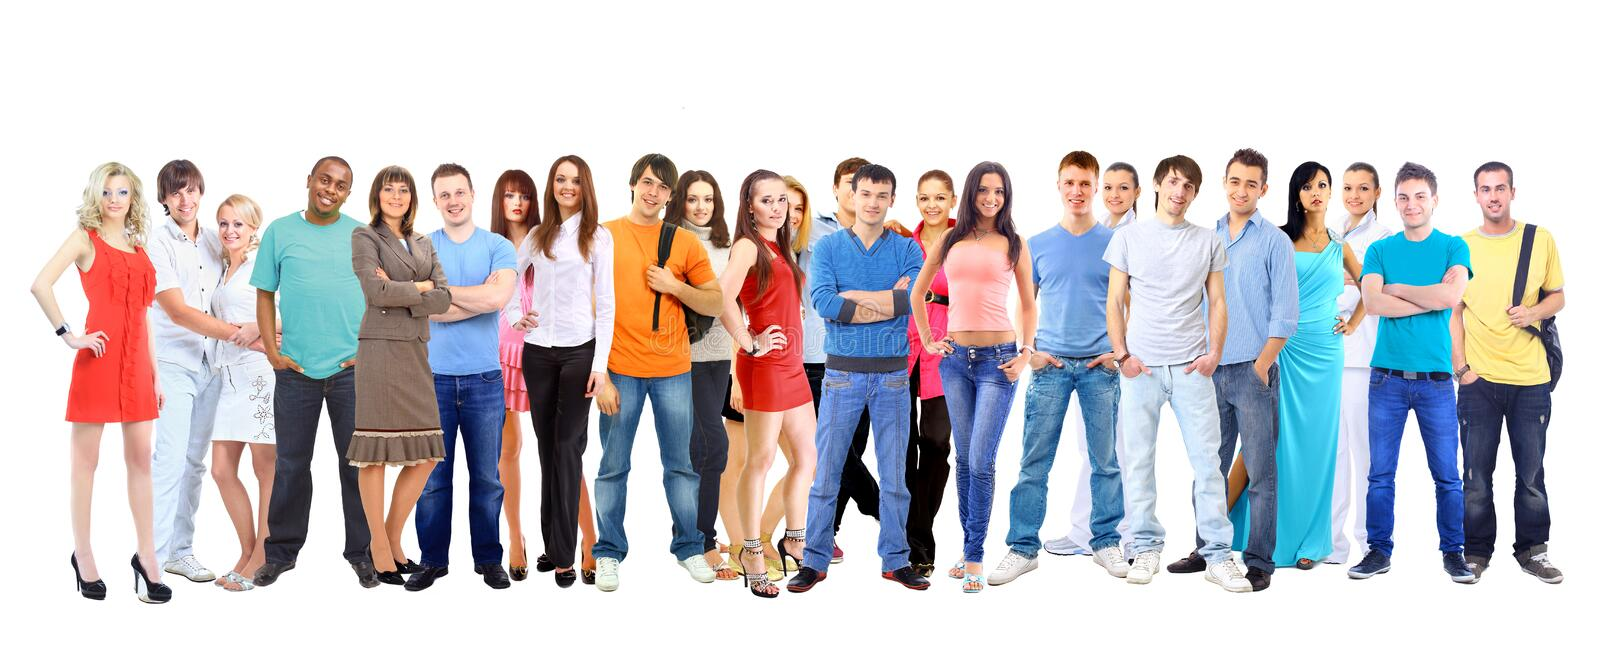 Big group students. Over white background royalty free stock images